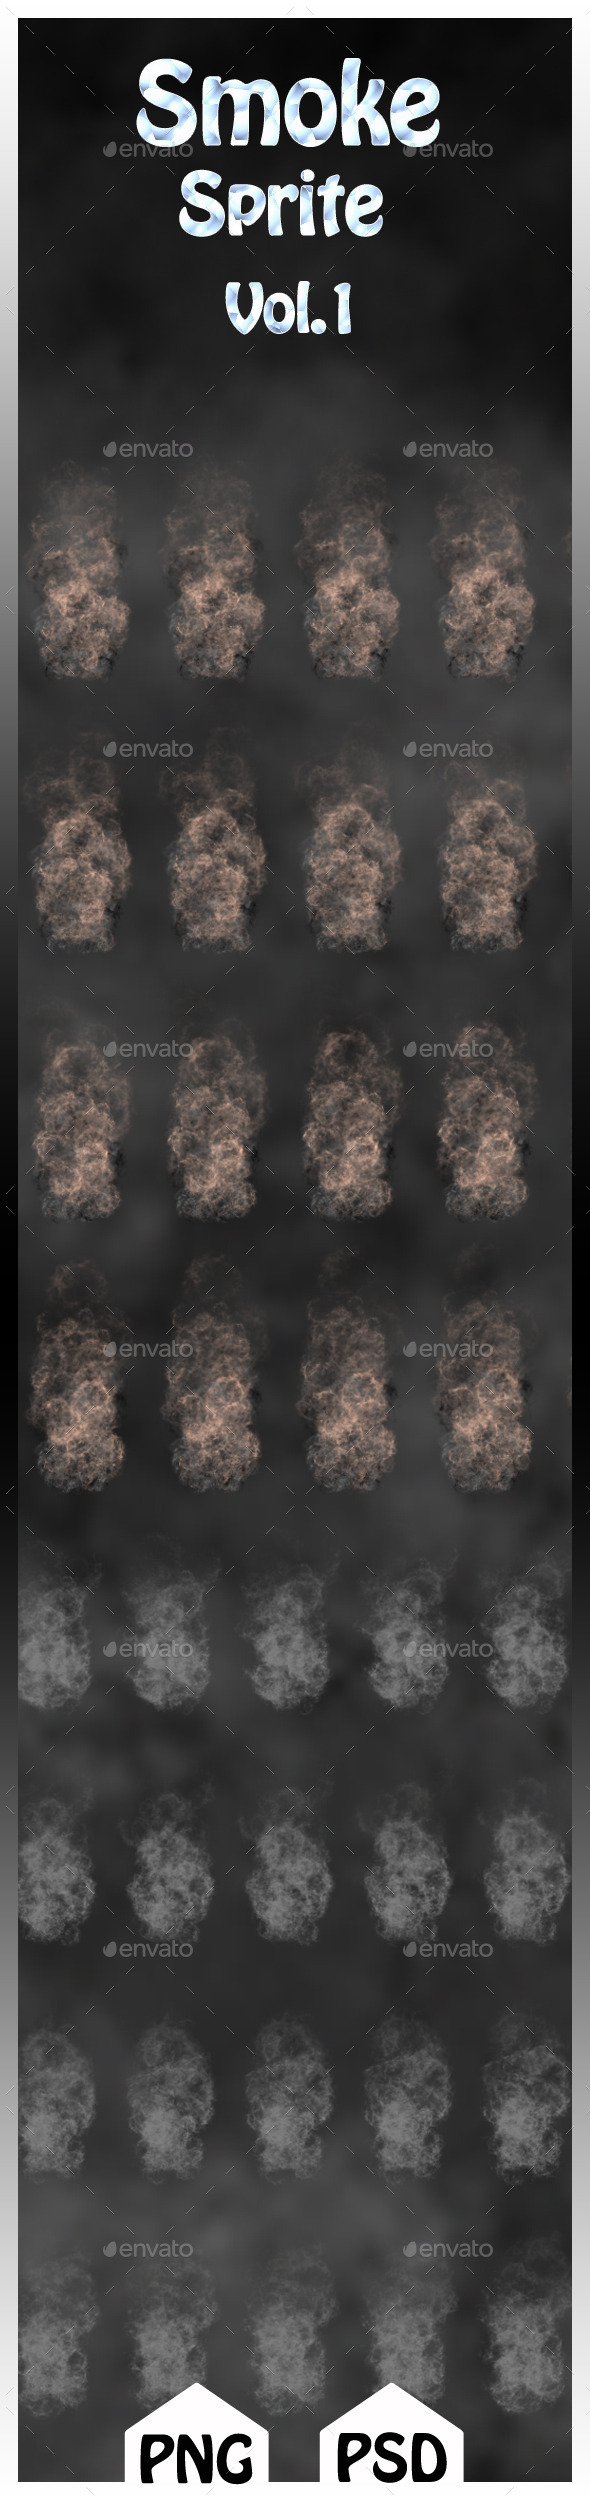 GraphicRiver Smoke sprites Vol.1 10818700